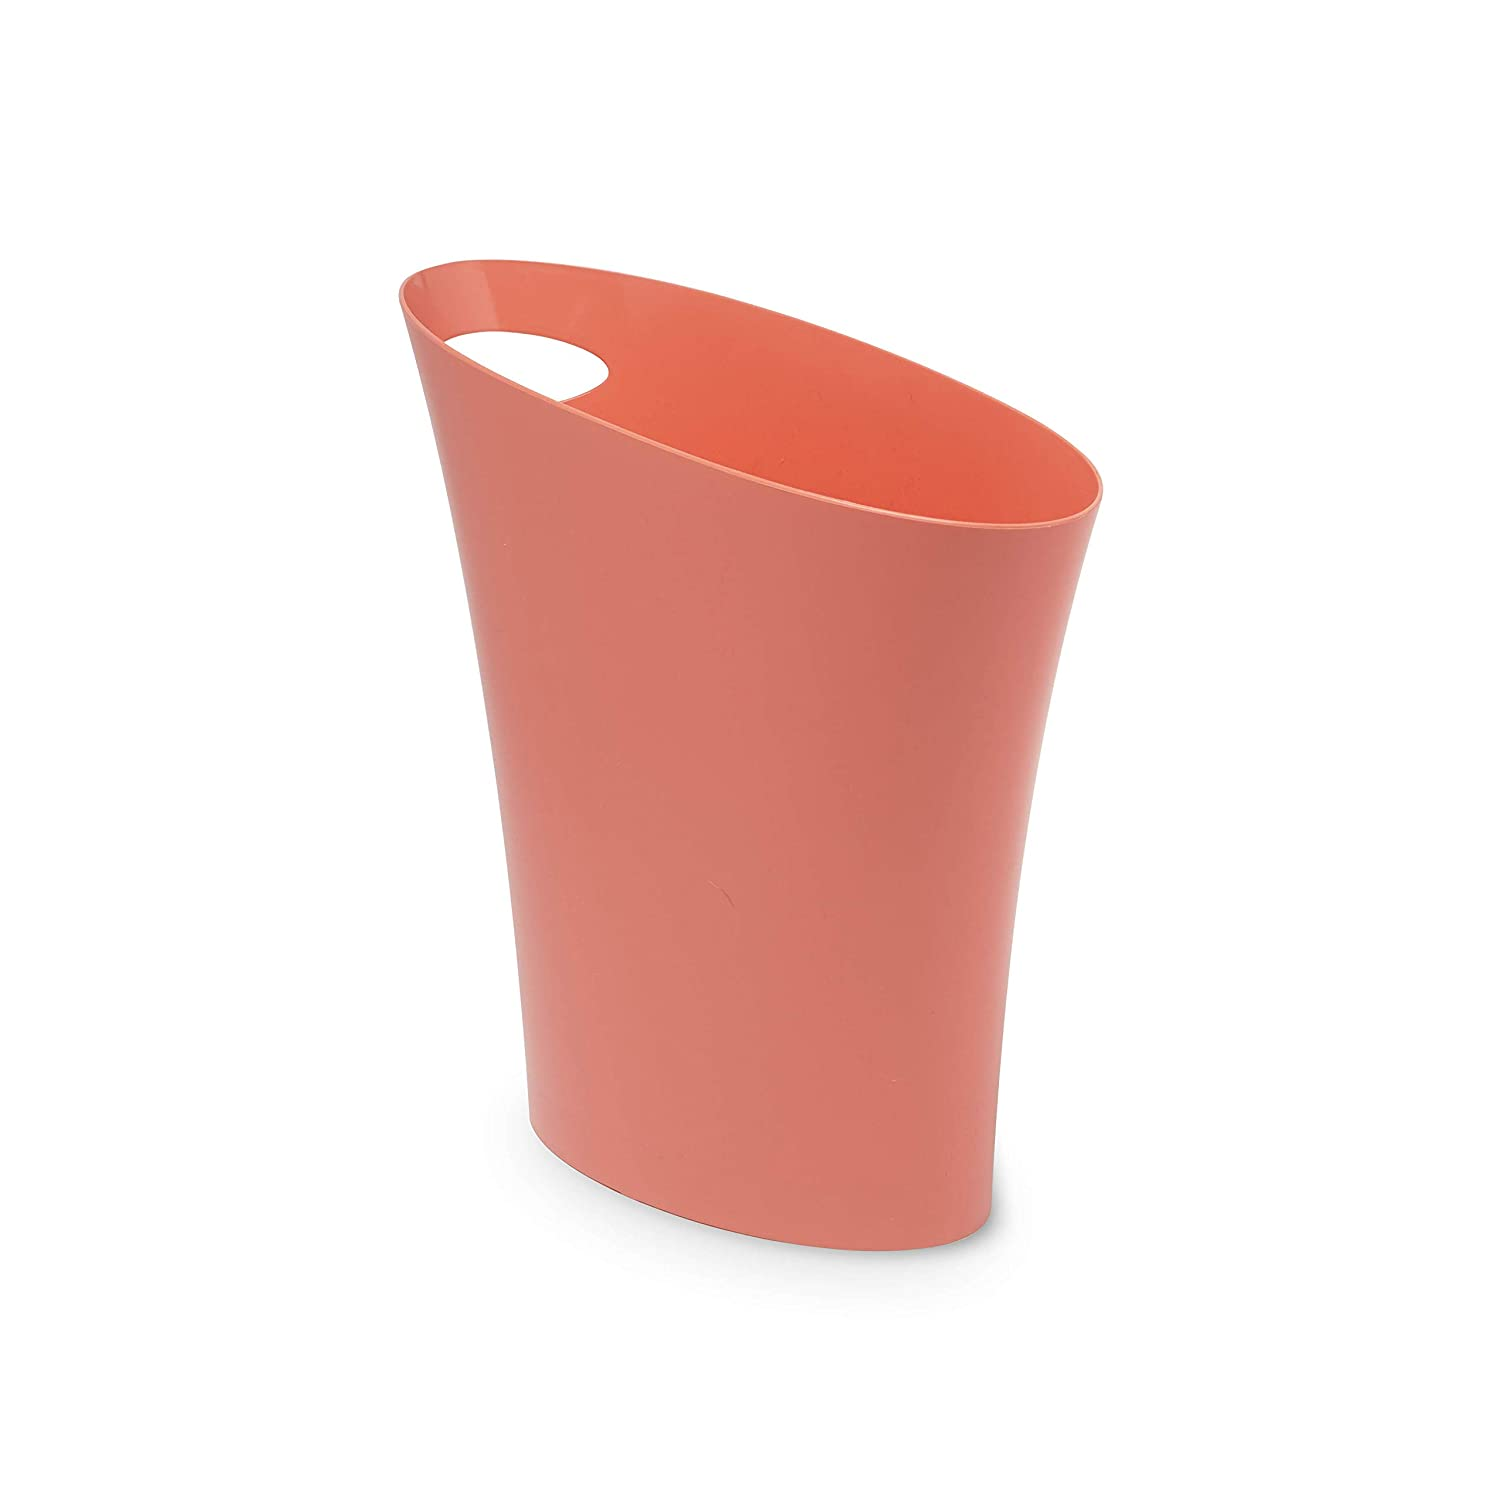 Umbra Skinny Sleek & Stylish Bathroom Trash, Small Garbage Can Wastebasket for Narrow Spaces at Home or Office, 2 Gallon Capacity, Coral, Single Pack,